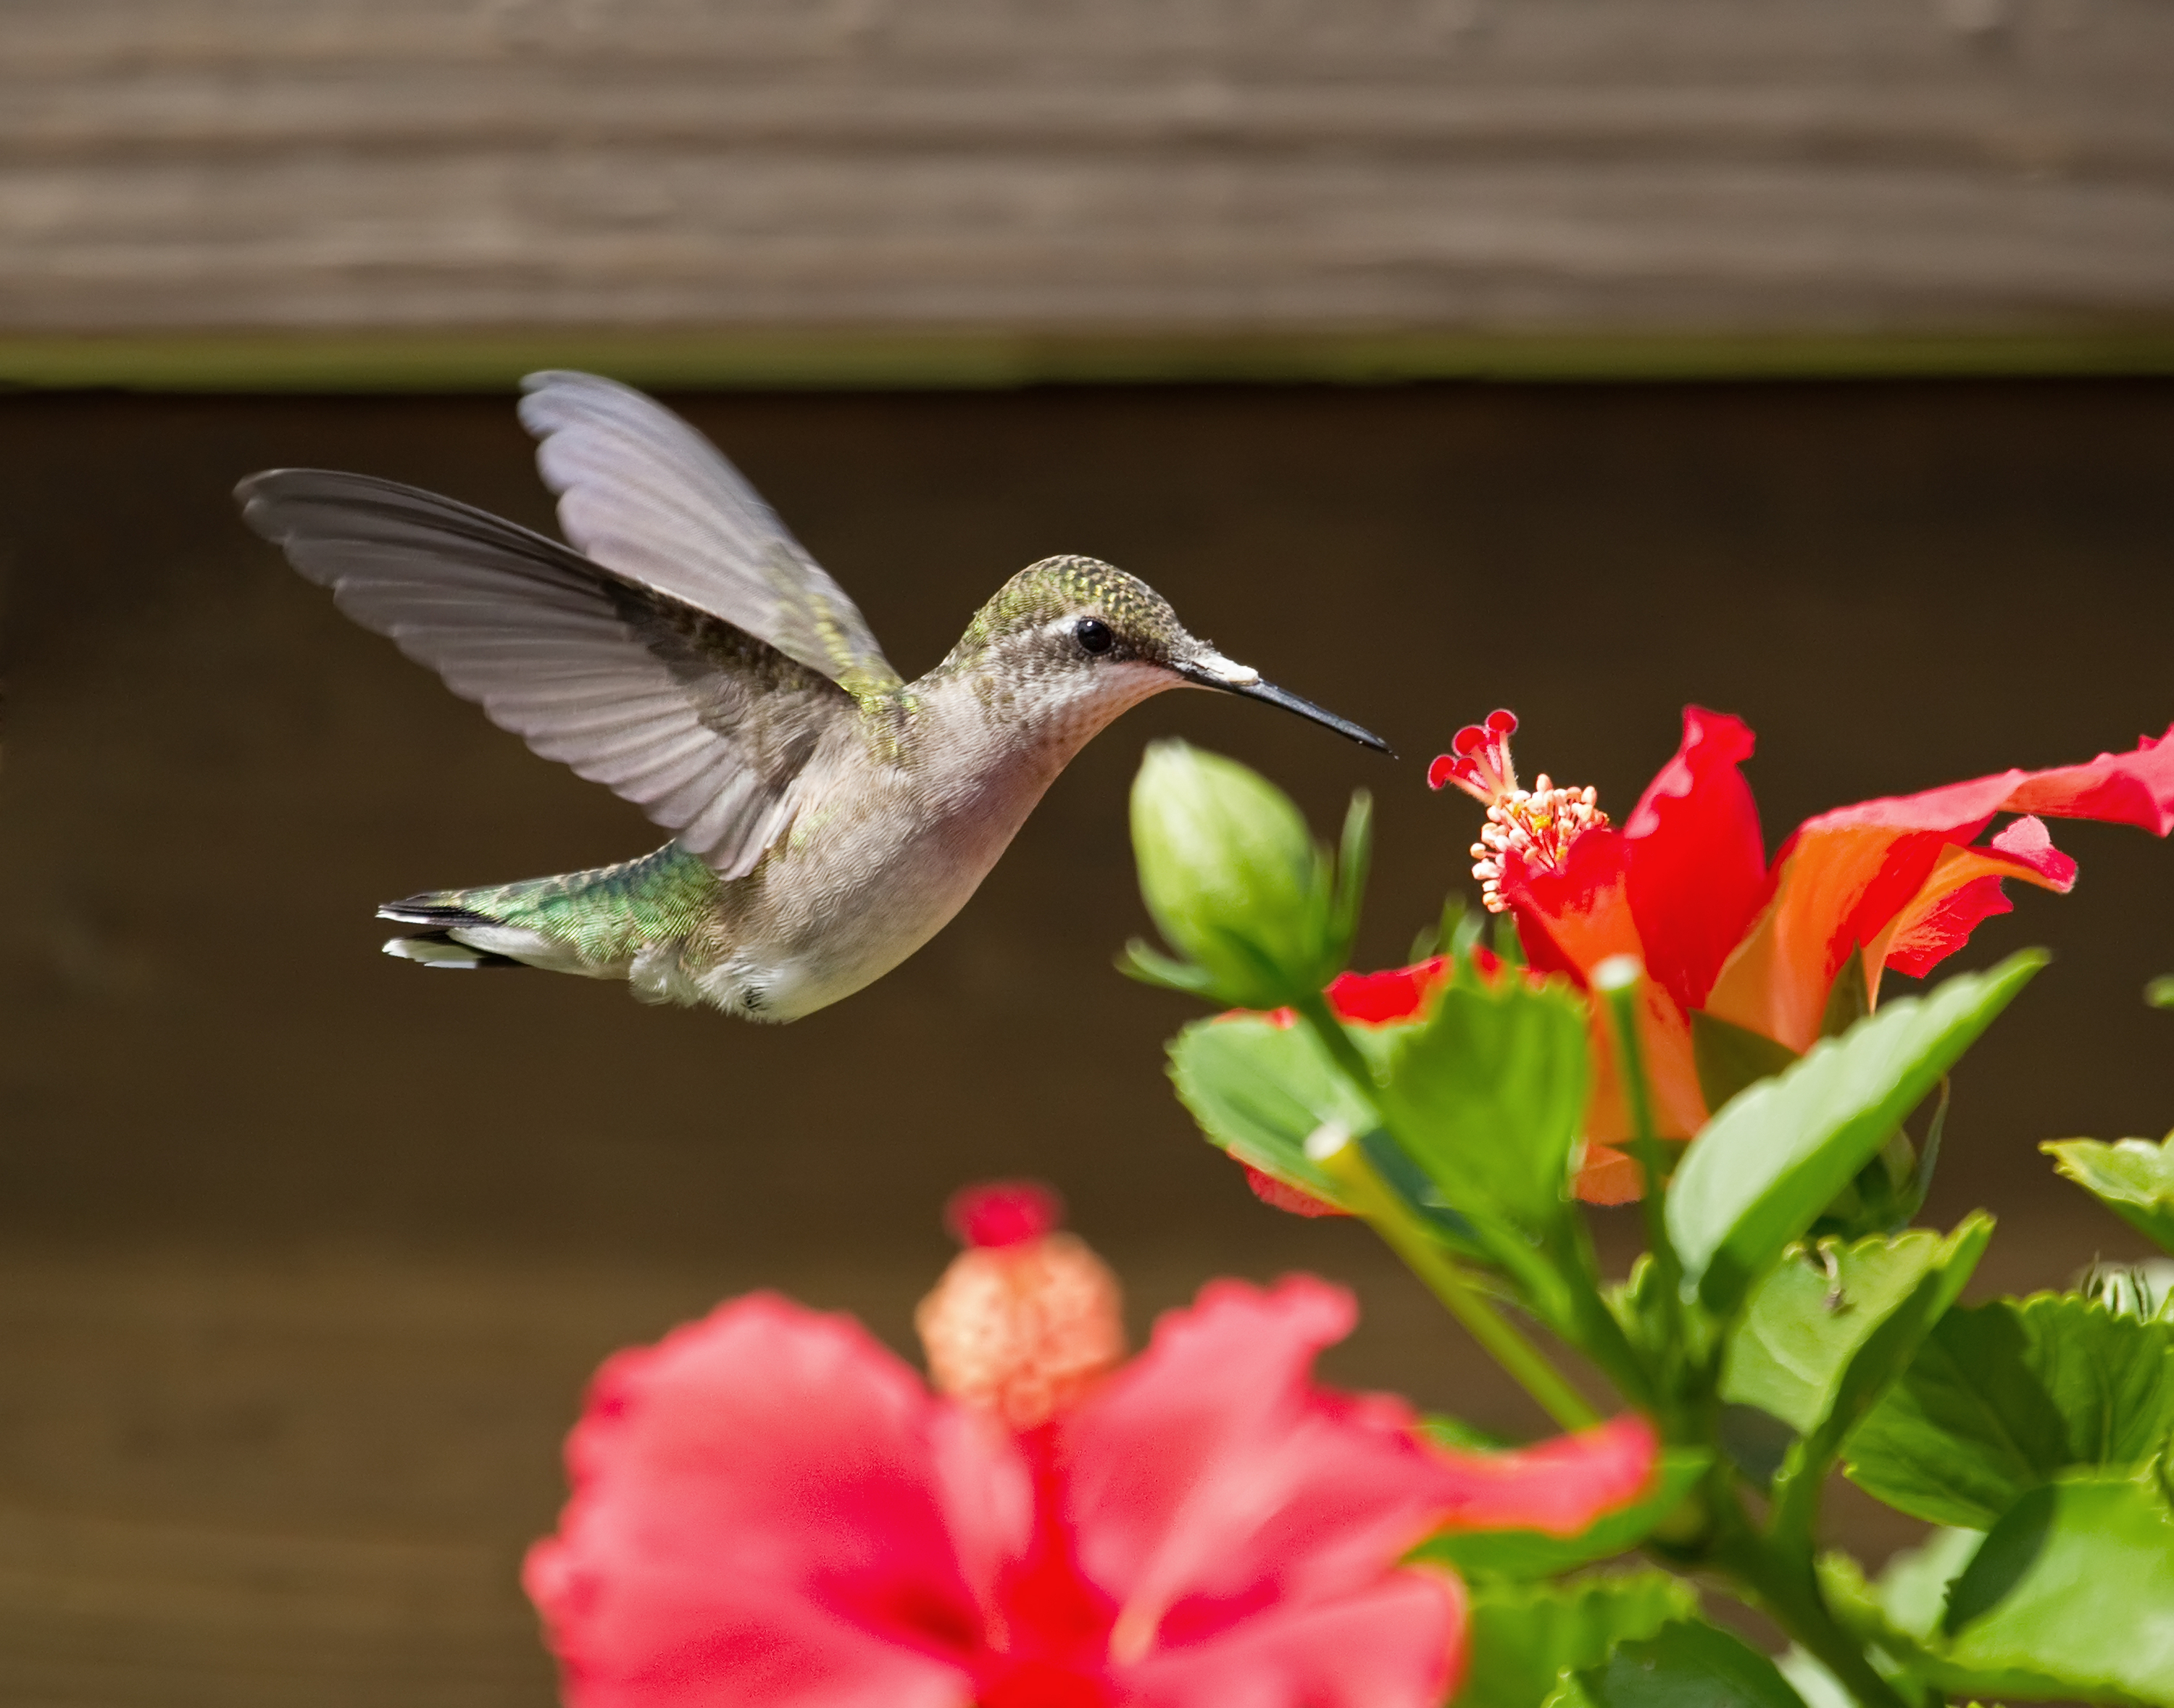 hummingbird | hummingbirds | how to attract hummingbirds to your garden | how to | attract hummingbirds | garden